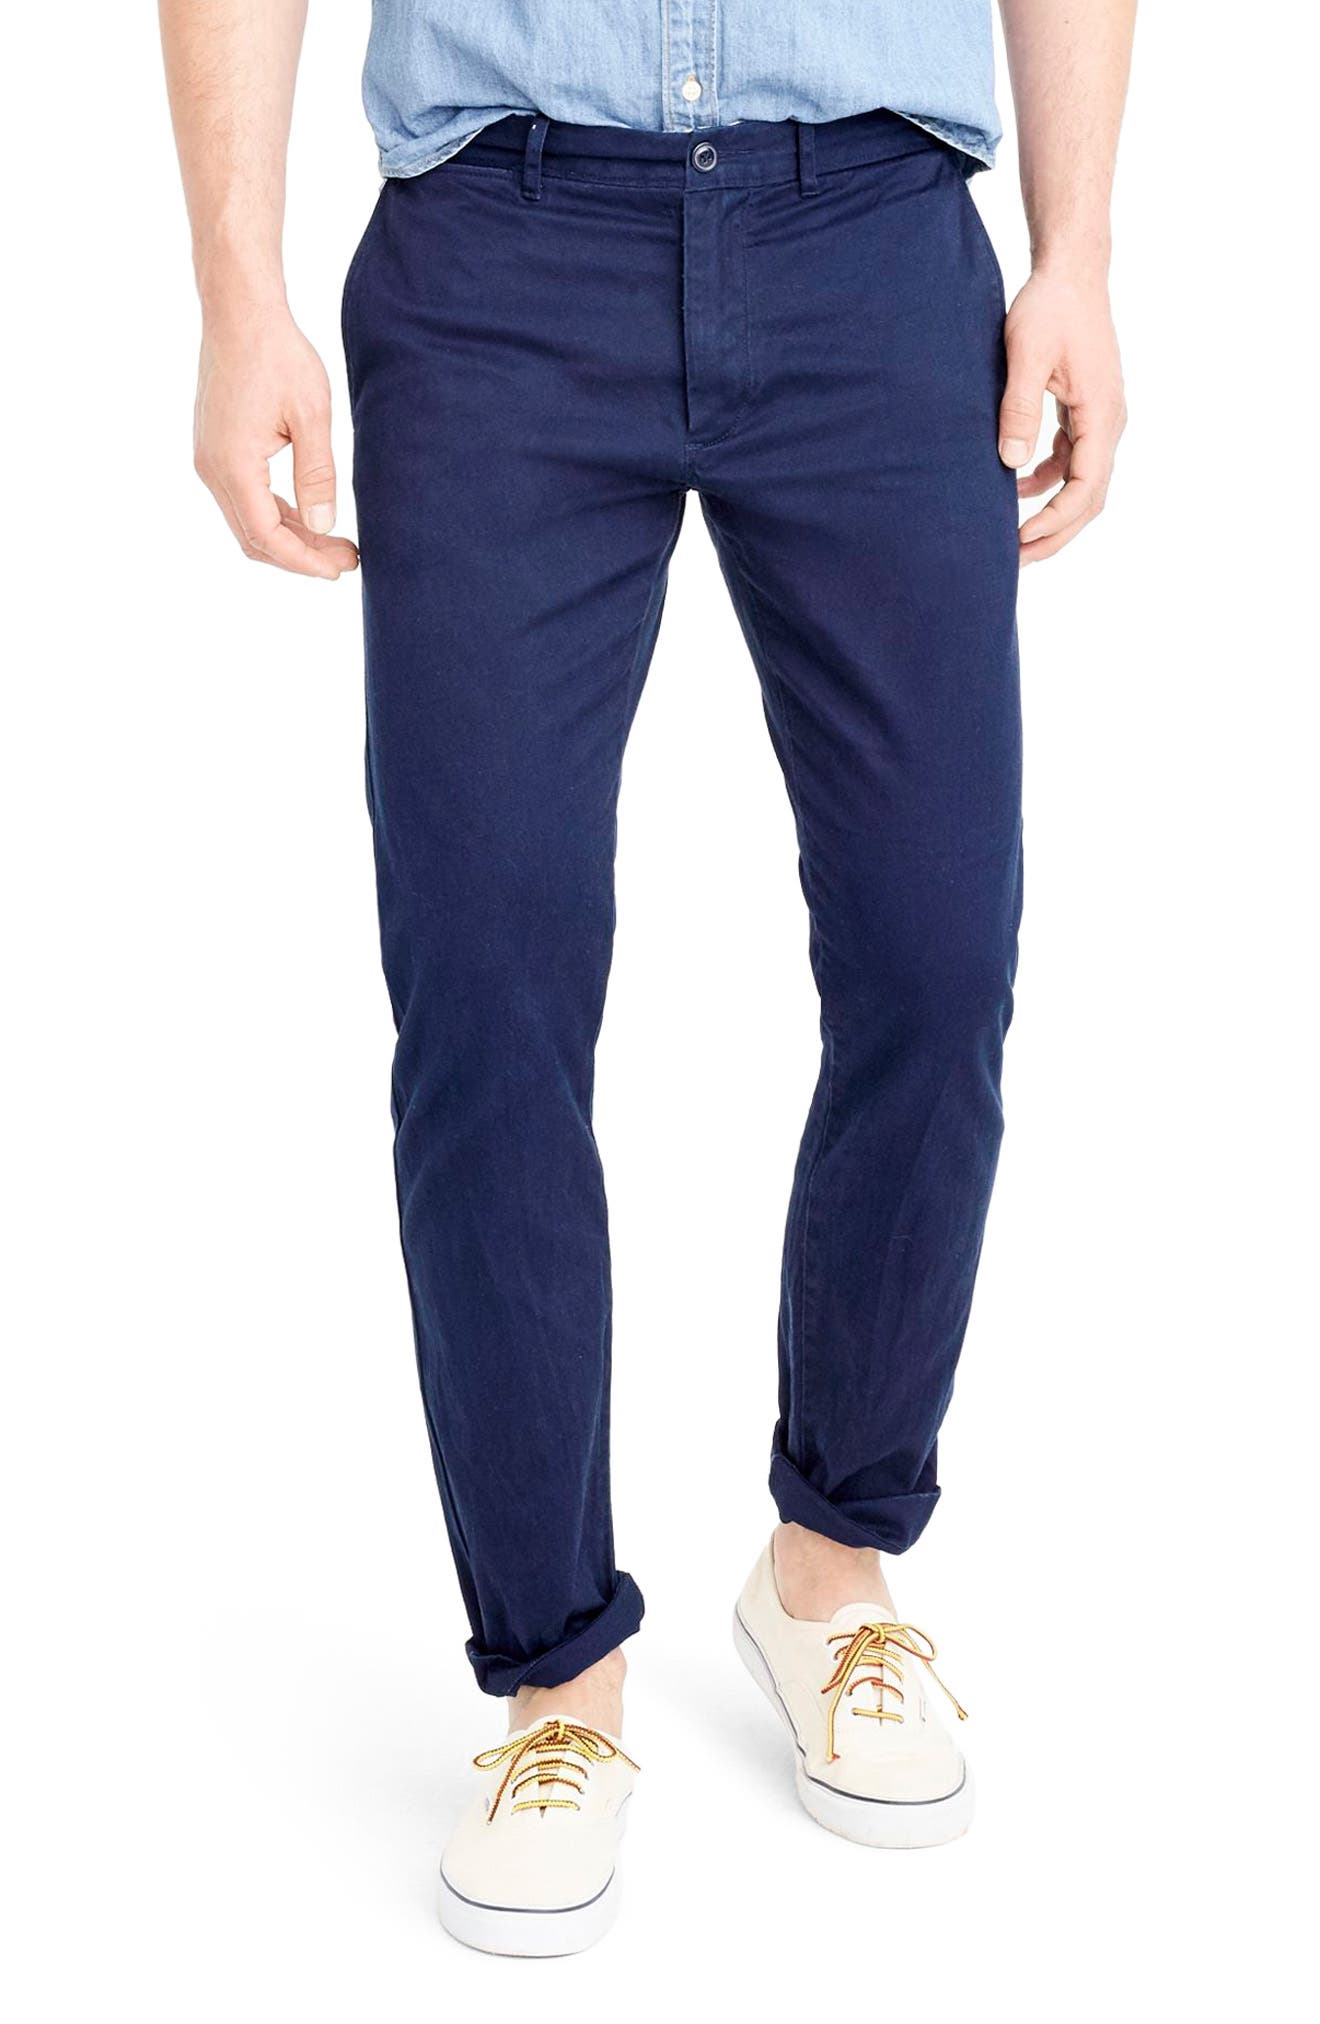 484 Slim Fit Stretch Chino Pants,                             Main thumbnail 9, color,